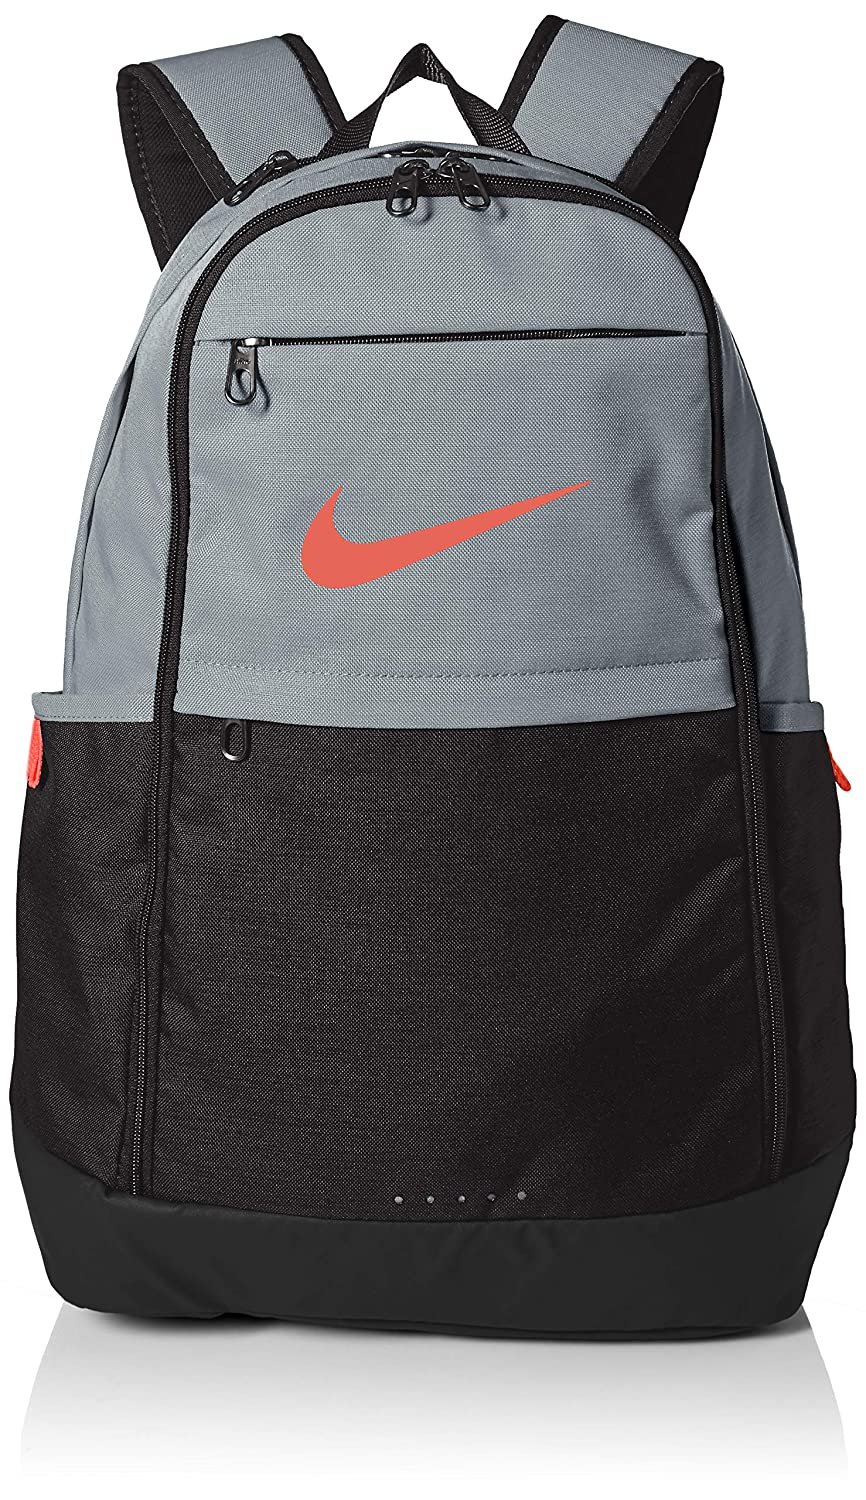 1e0159fab89 Amazon.com: Nike Brasilia Training Backpack, Extra Large Backpack Built for  Secure Storage with a Durable Design, Cool Grey/Black/Habanero Red: Clothing